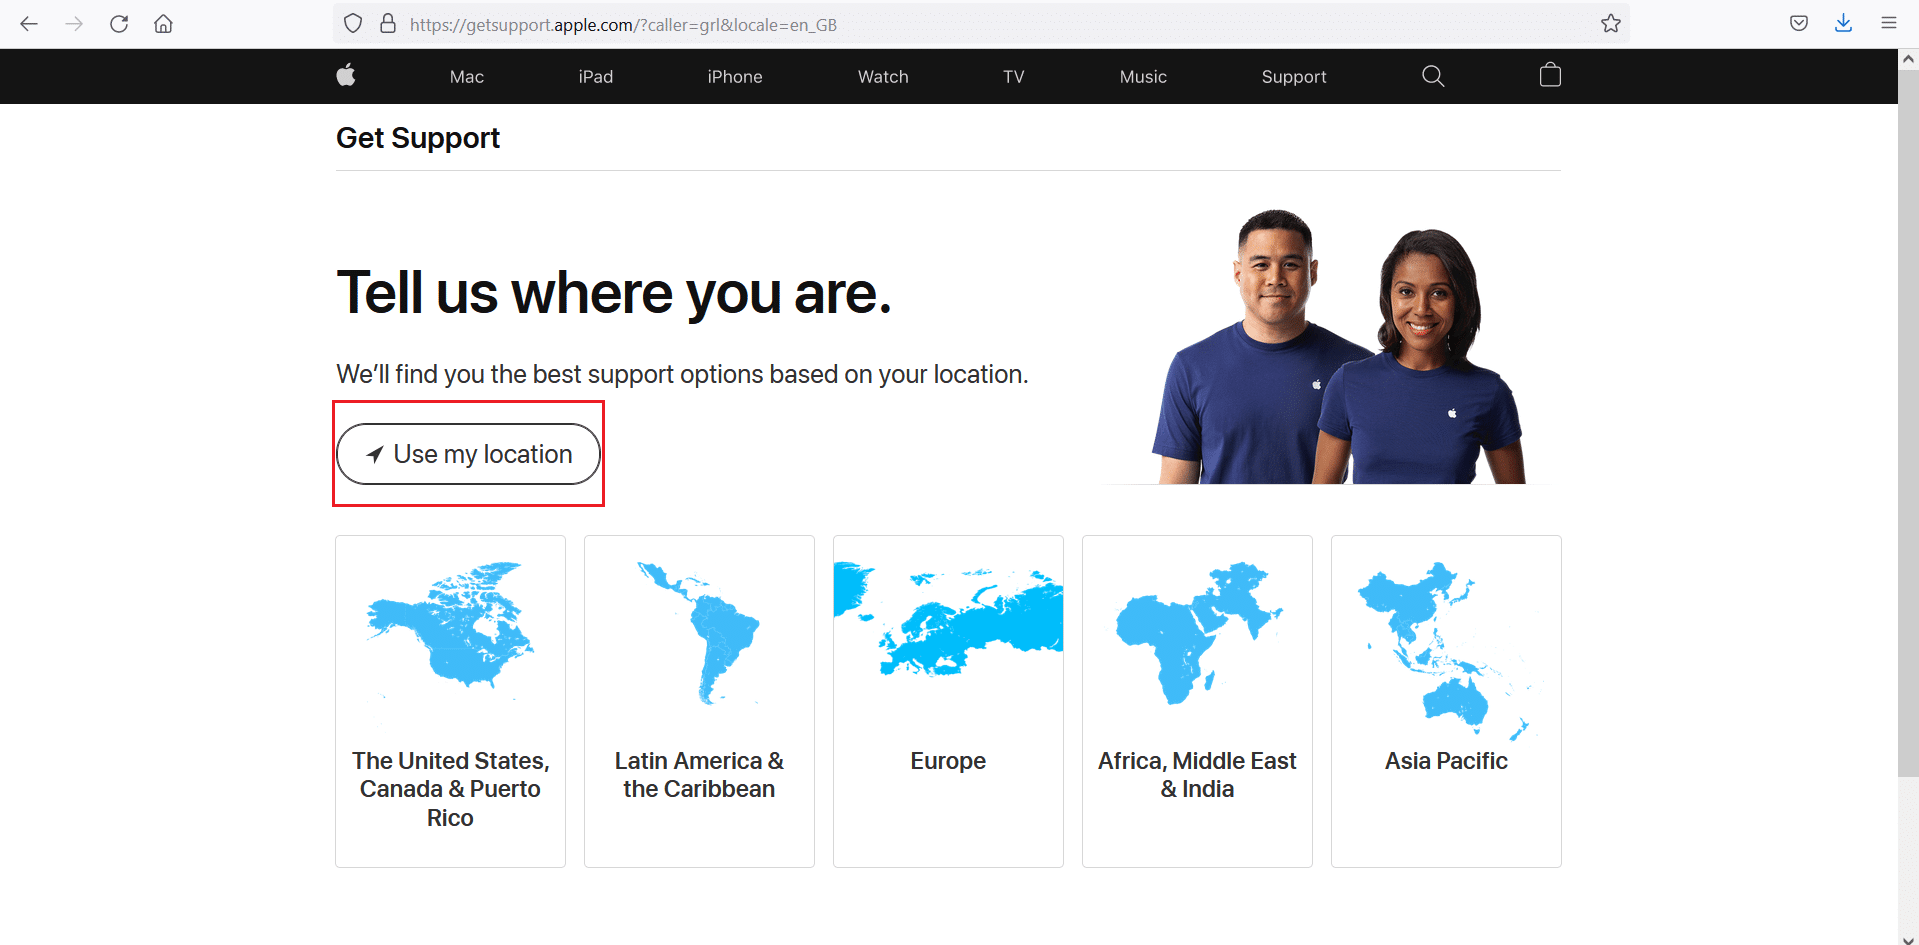 Use my location for Apple Support